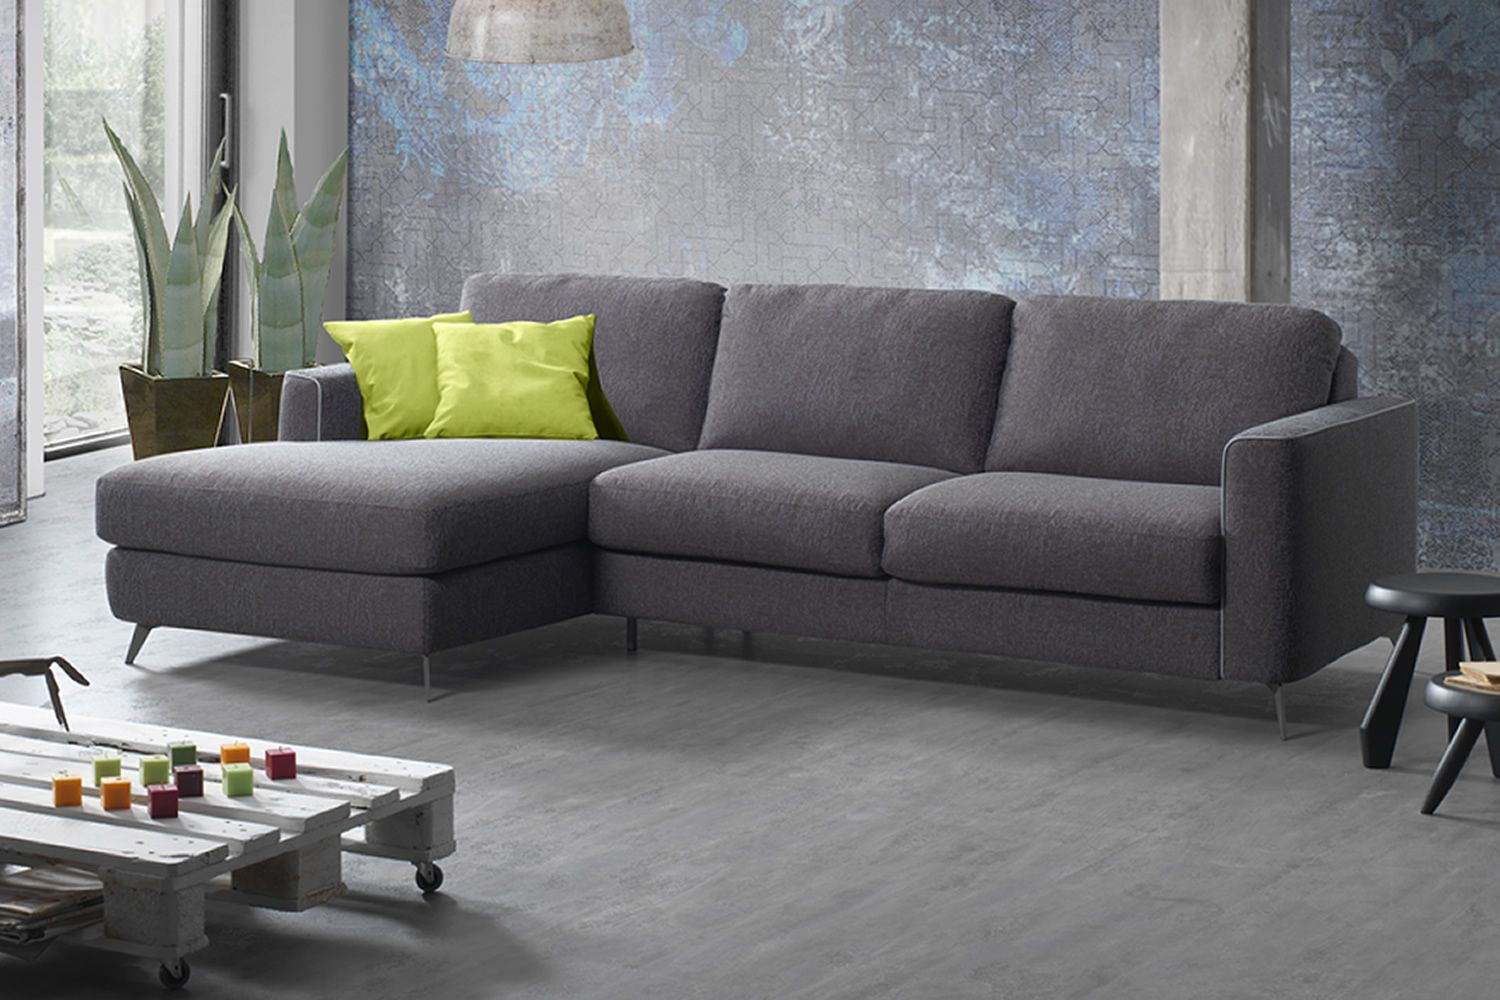 Fiordaliso-A: 2, 3 or 3XL seaters sofa, with peninsula, totally ...